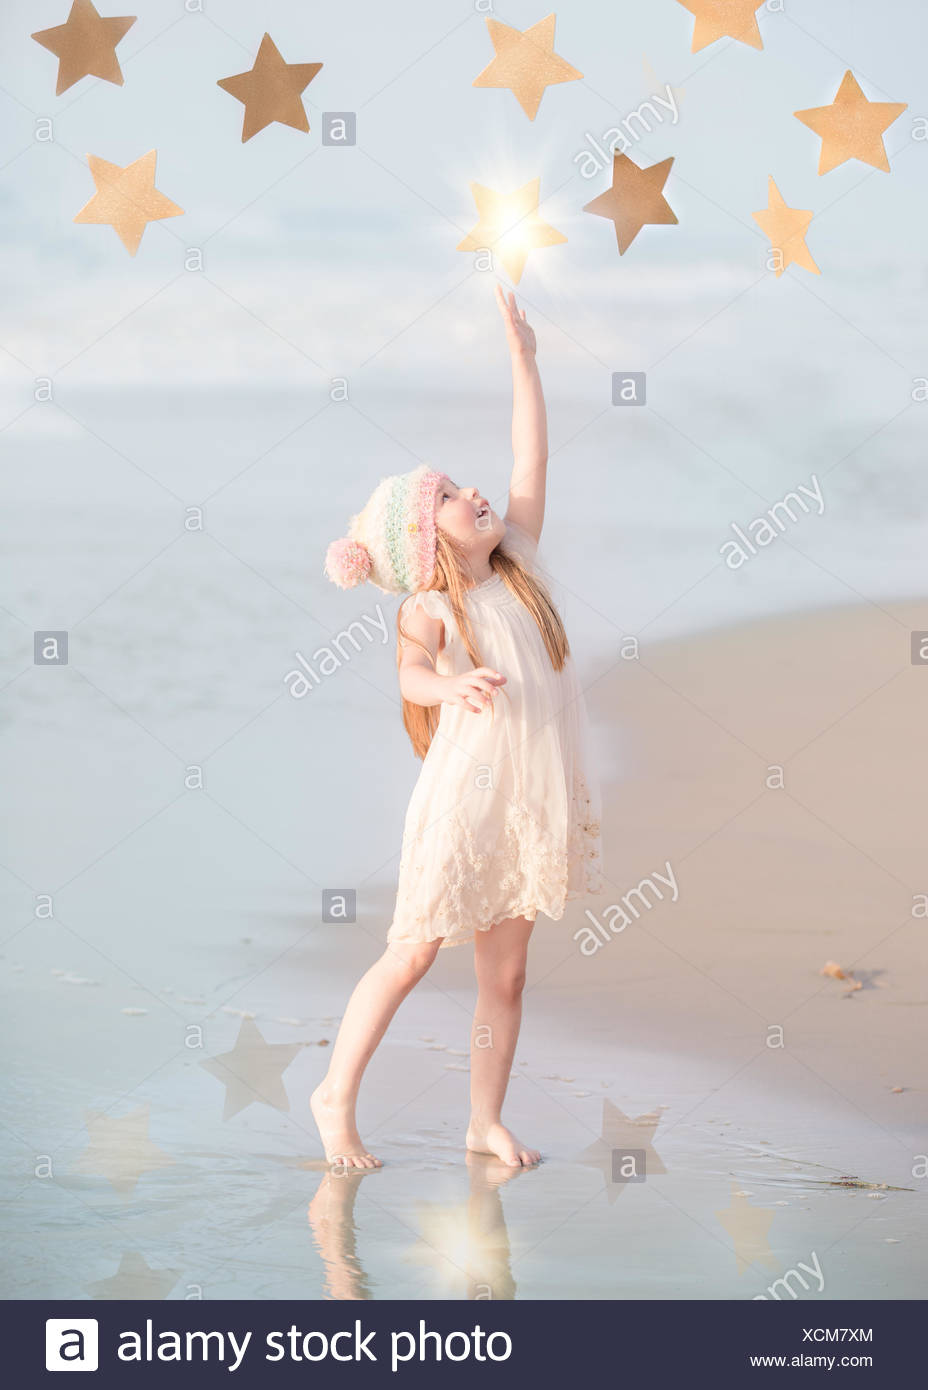 Girl reaching for the stars - Stock Image